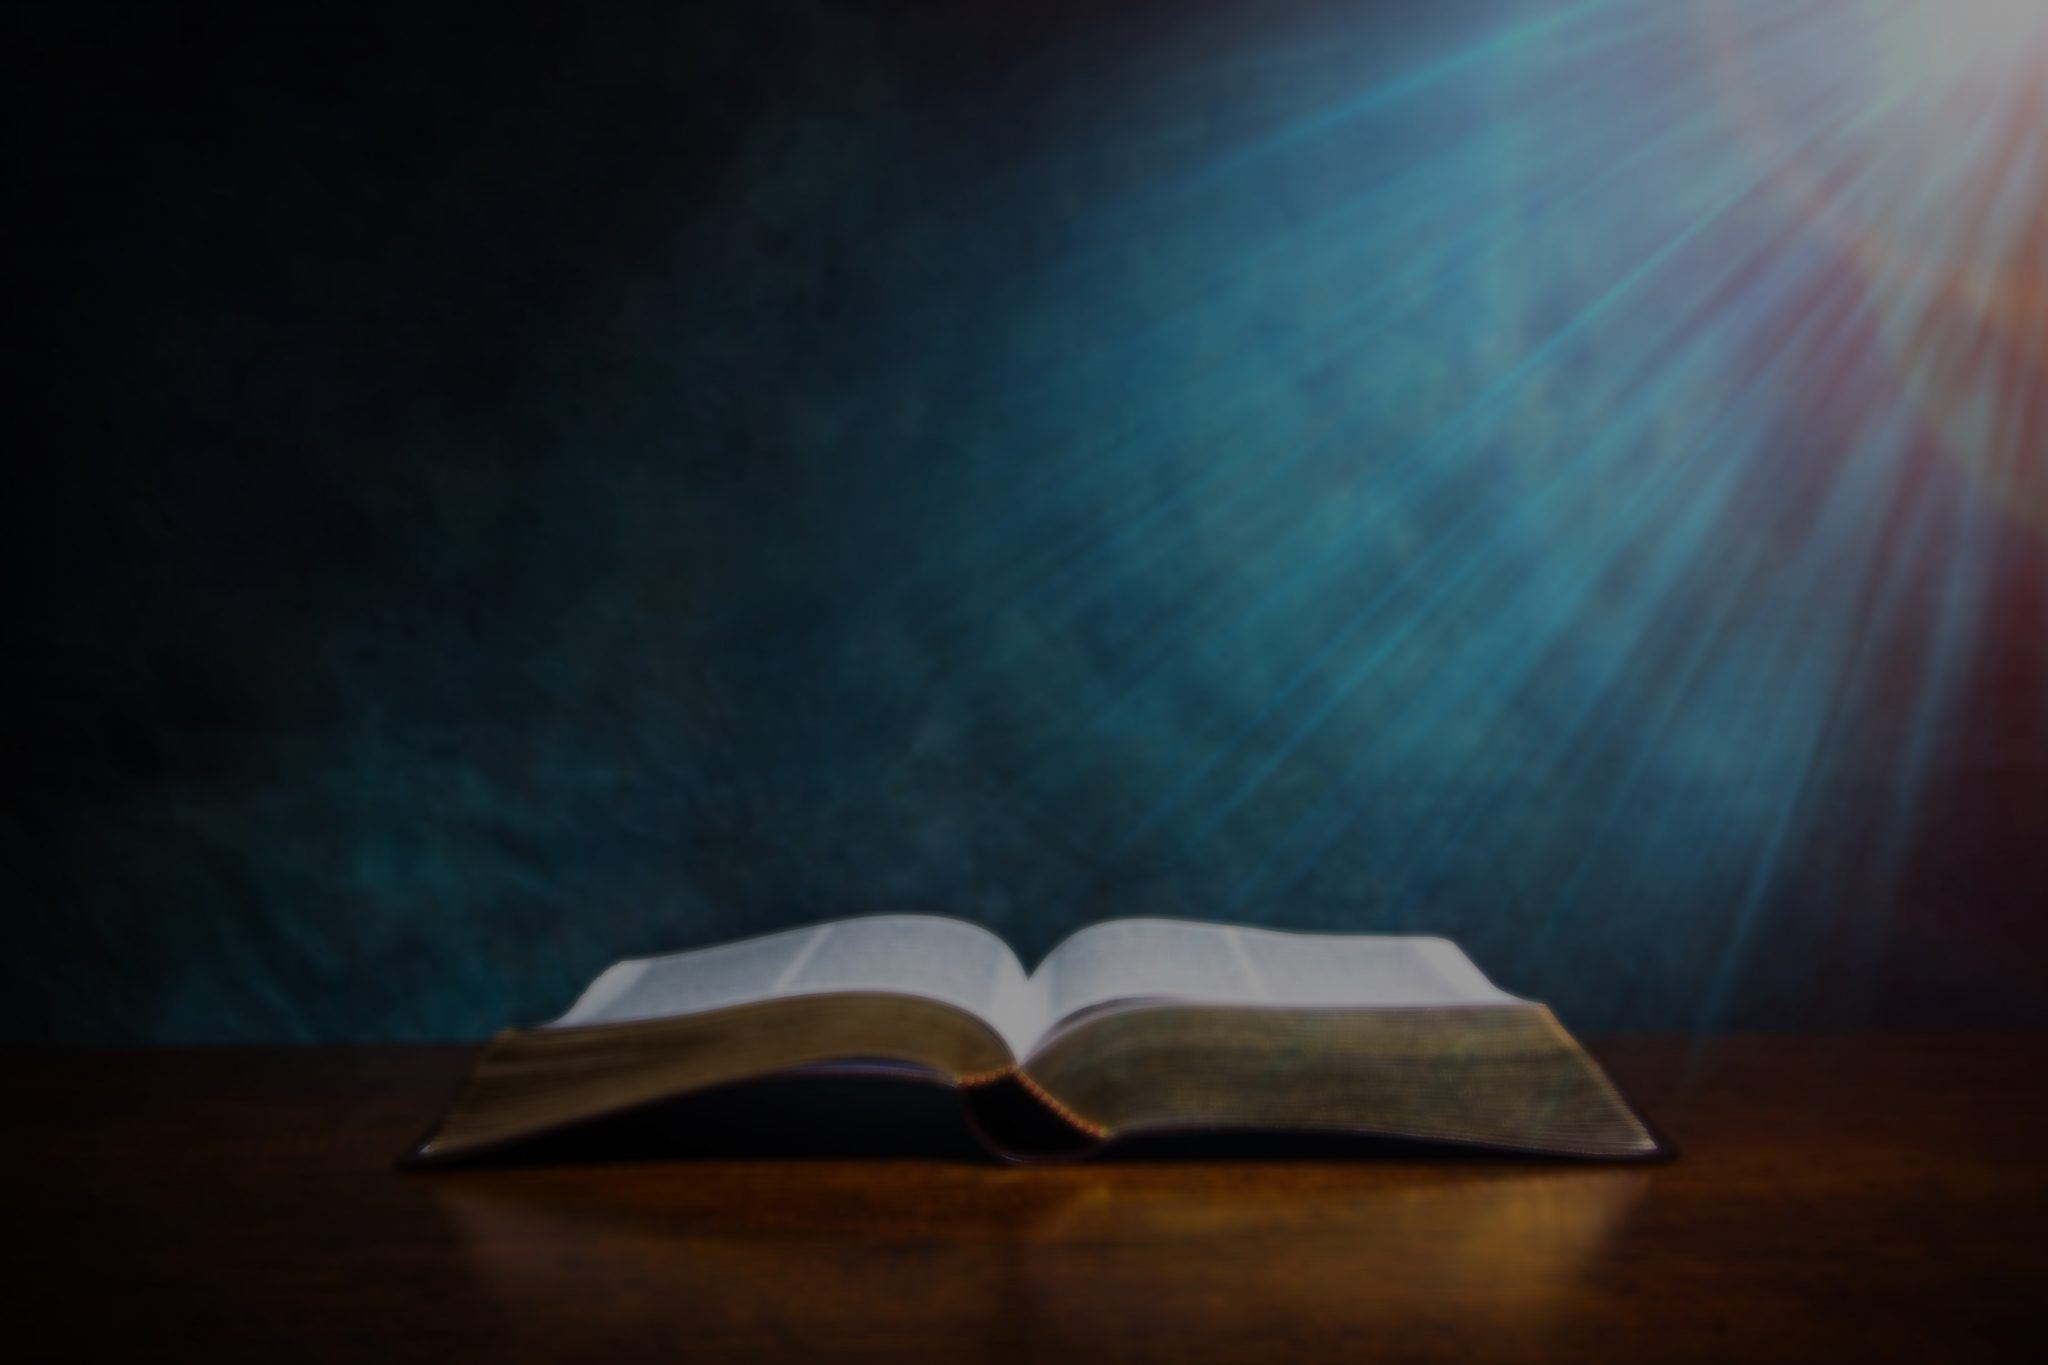 Open Bible blurred